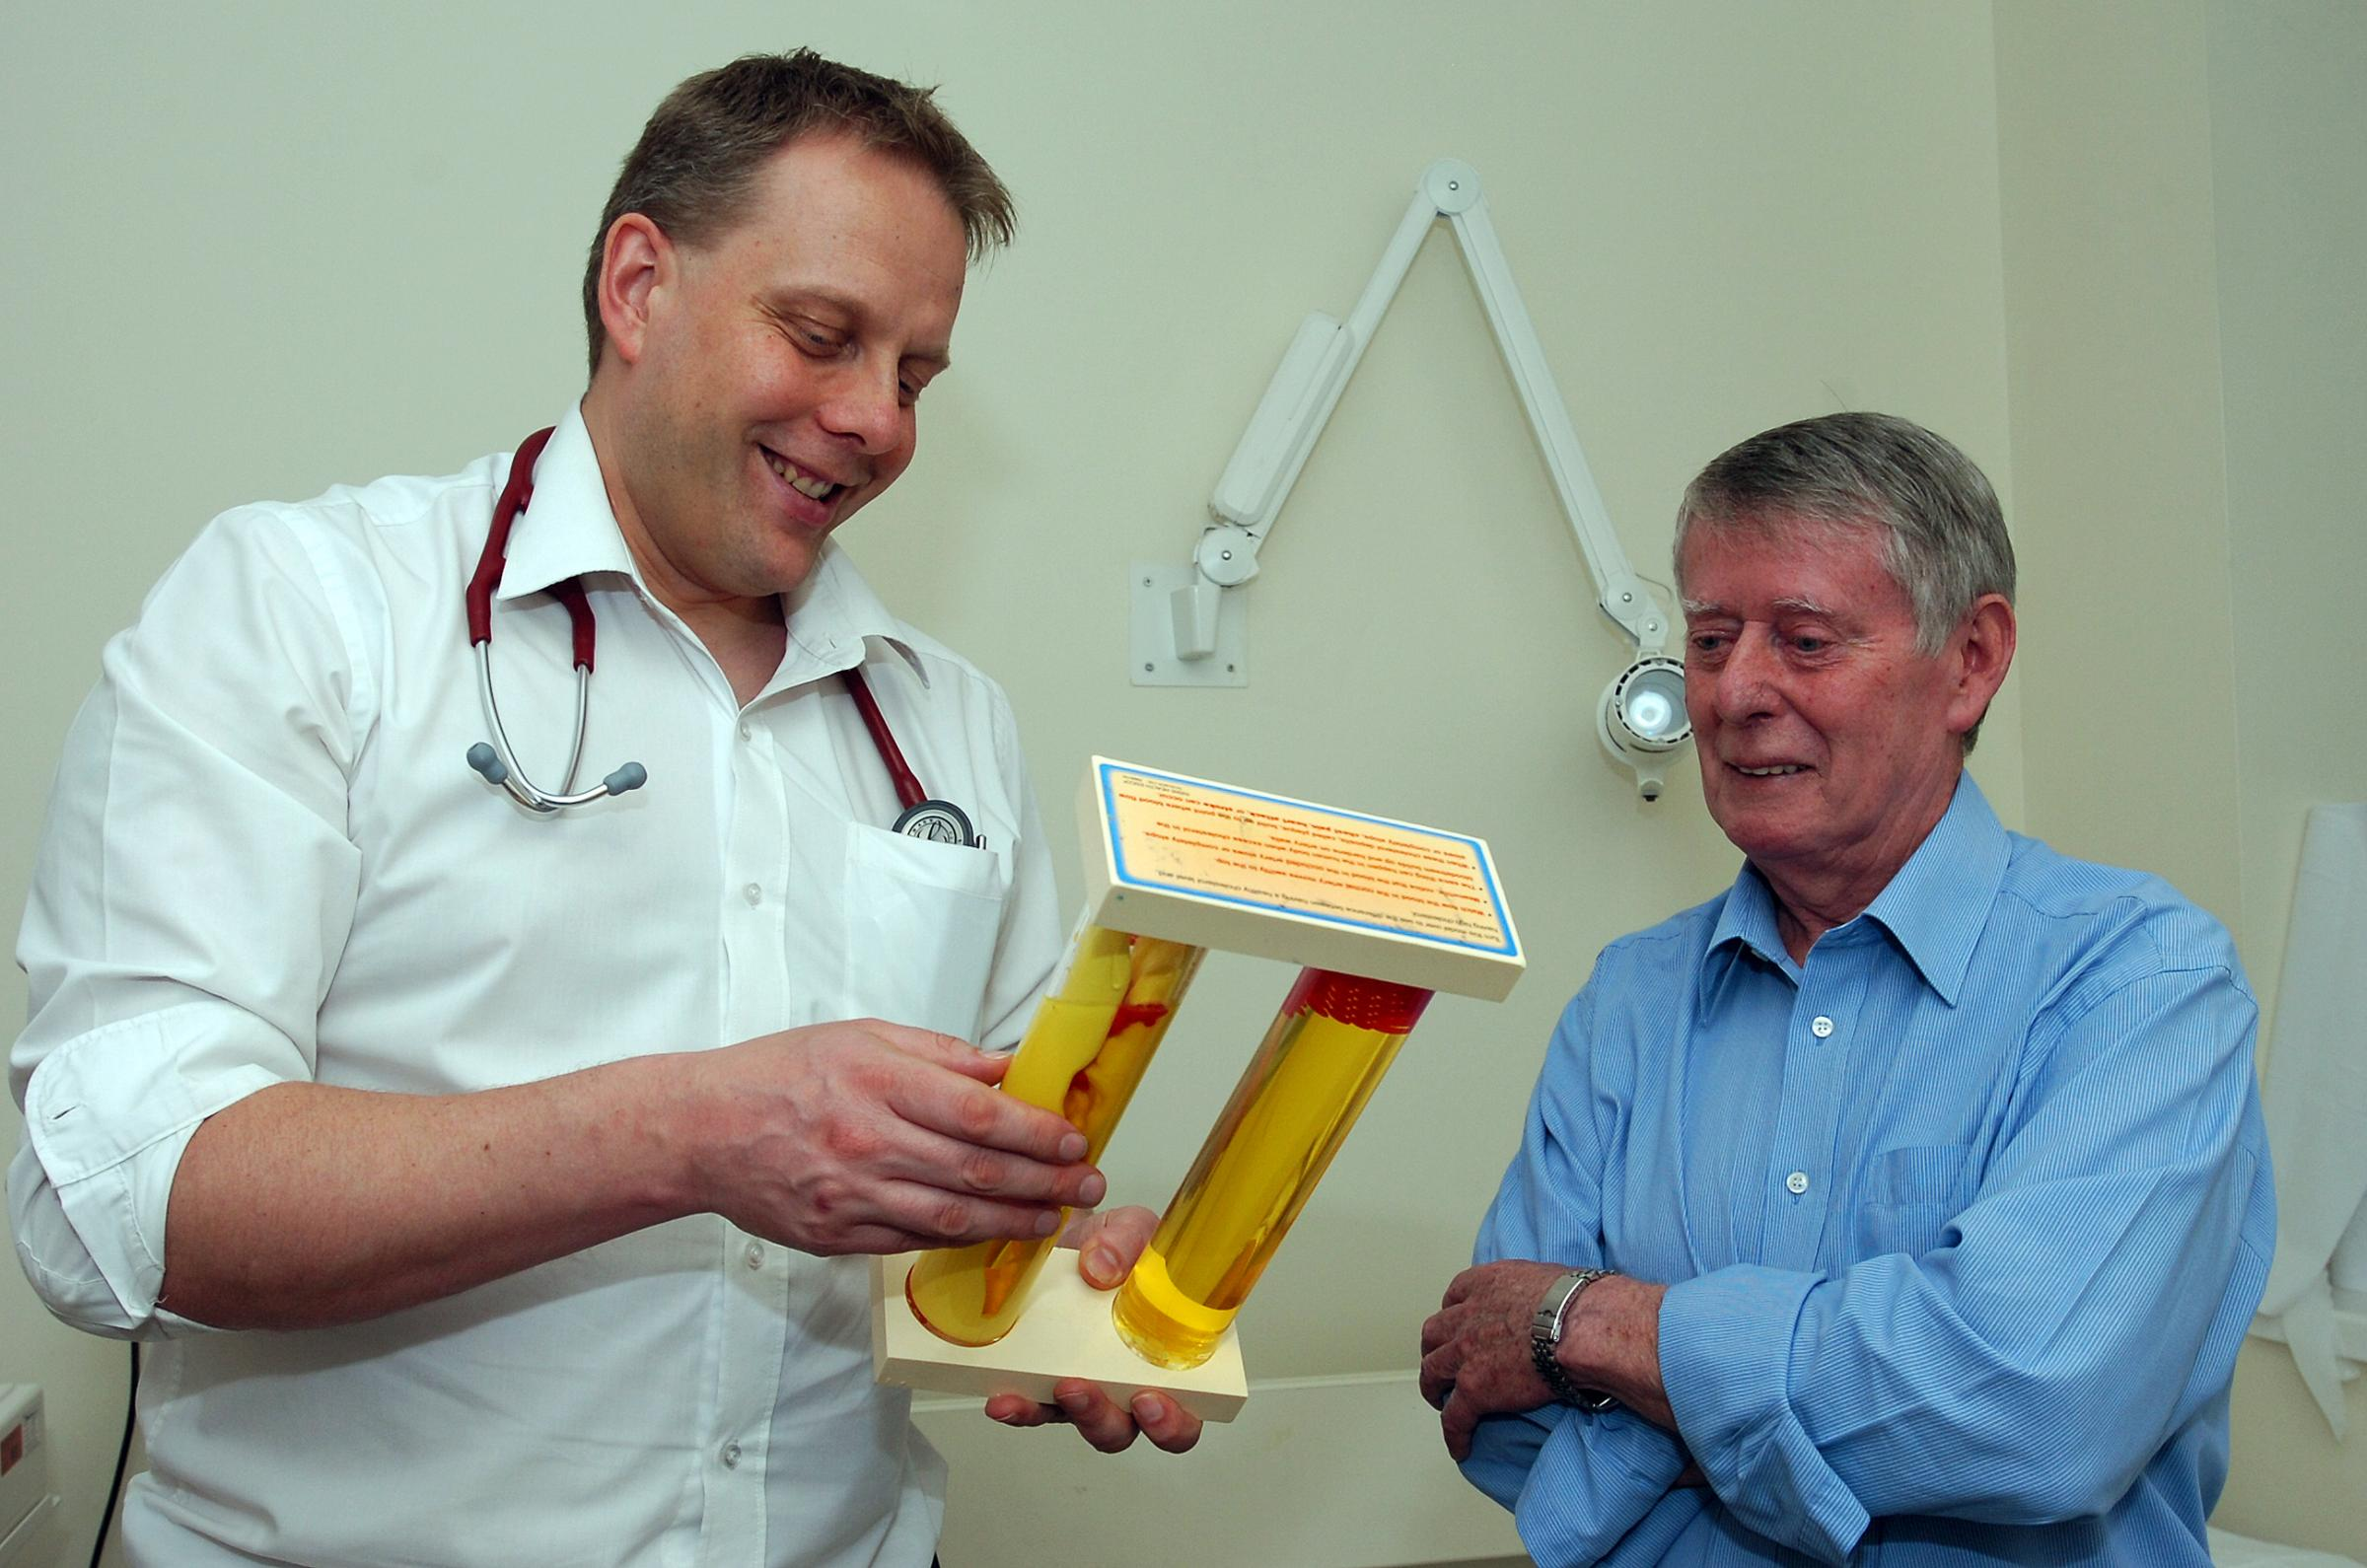 Recovering from a mini-stroke - Peter McCarthy gets advice from consultant Paul Guyler after his own health scare